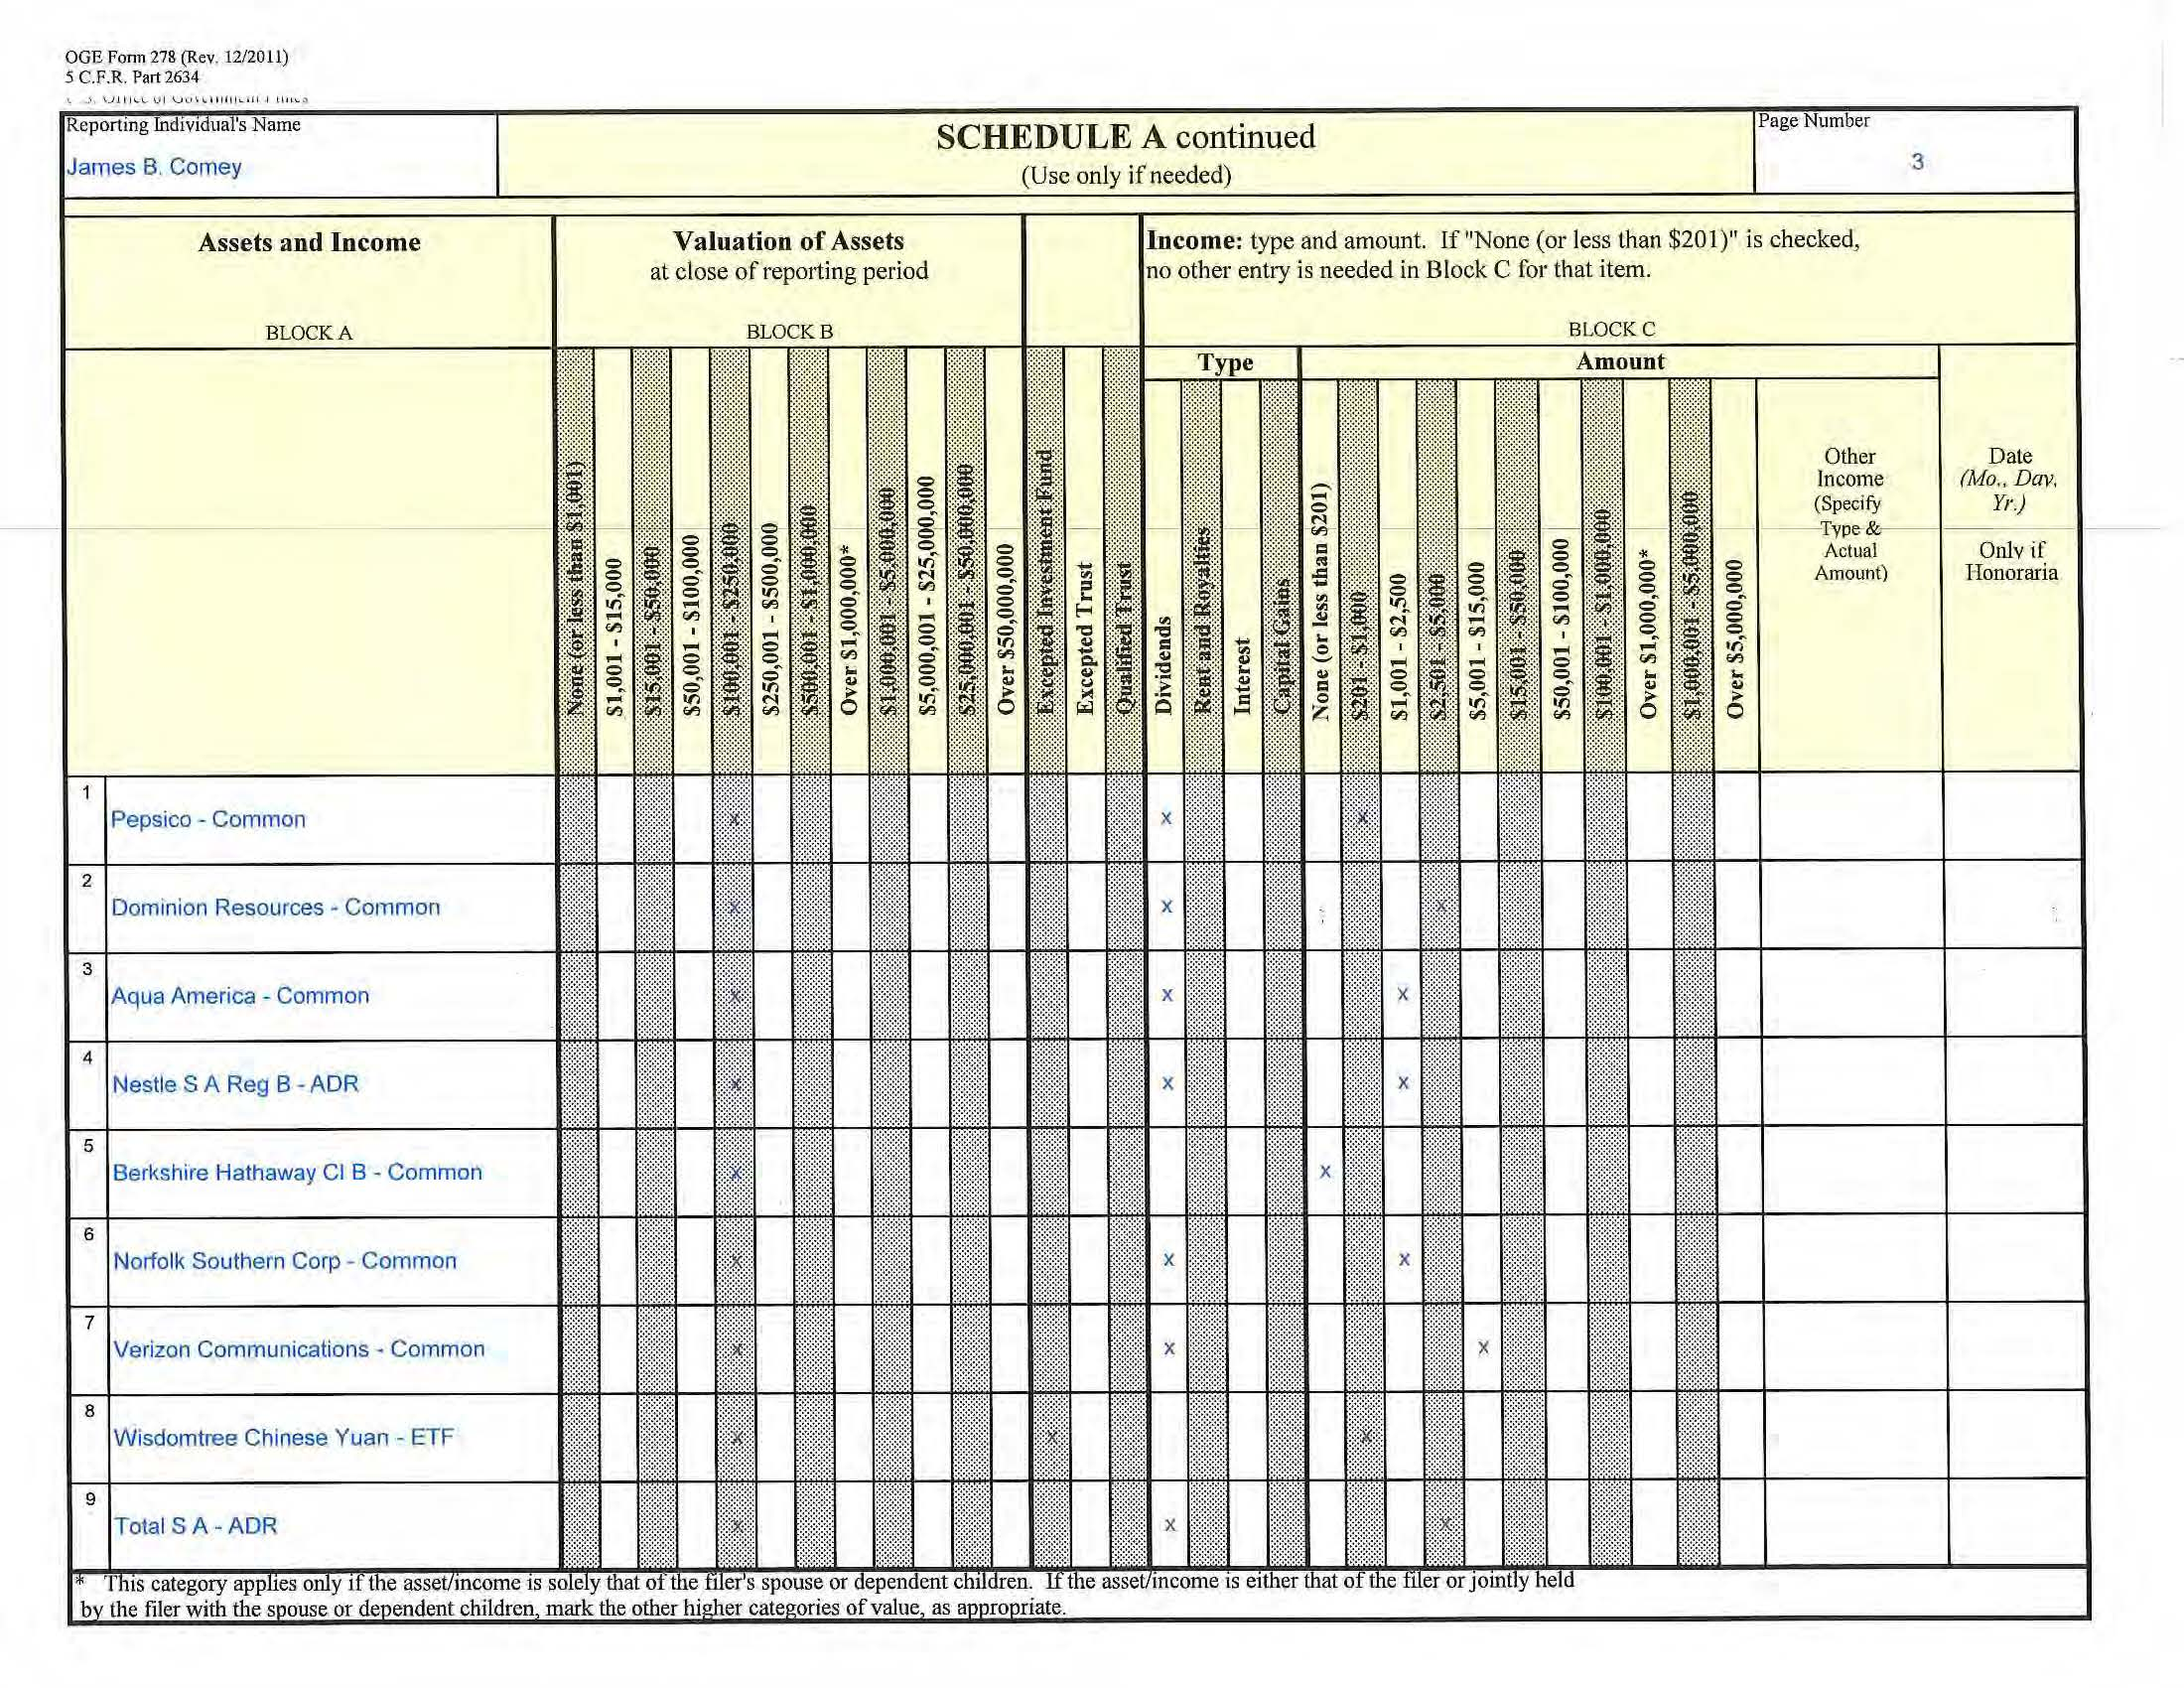 James-B-Comey-2013Form278NewEntrant_Page_03.jpg